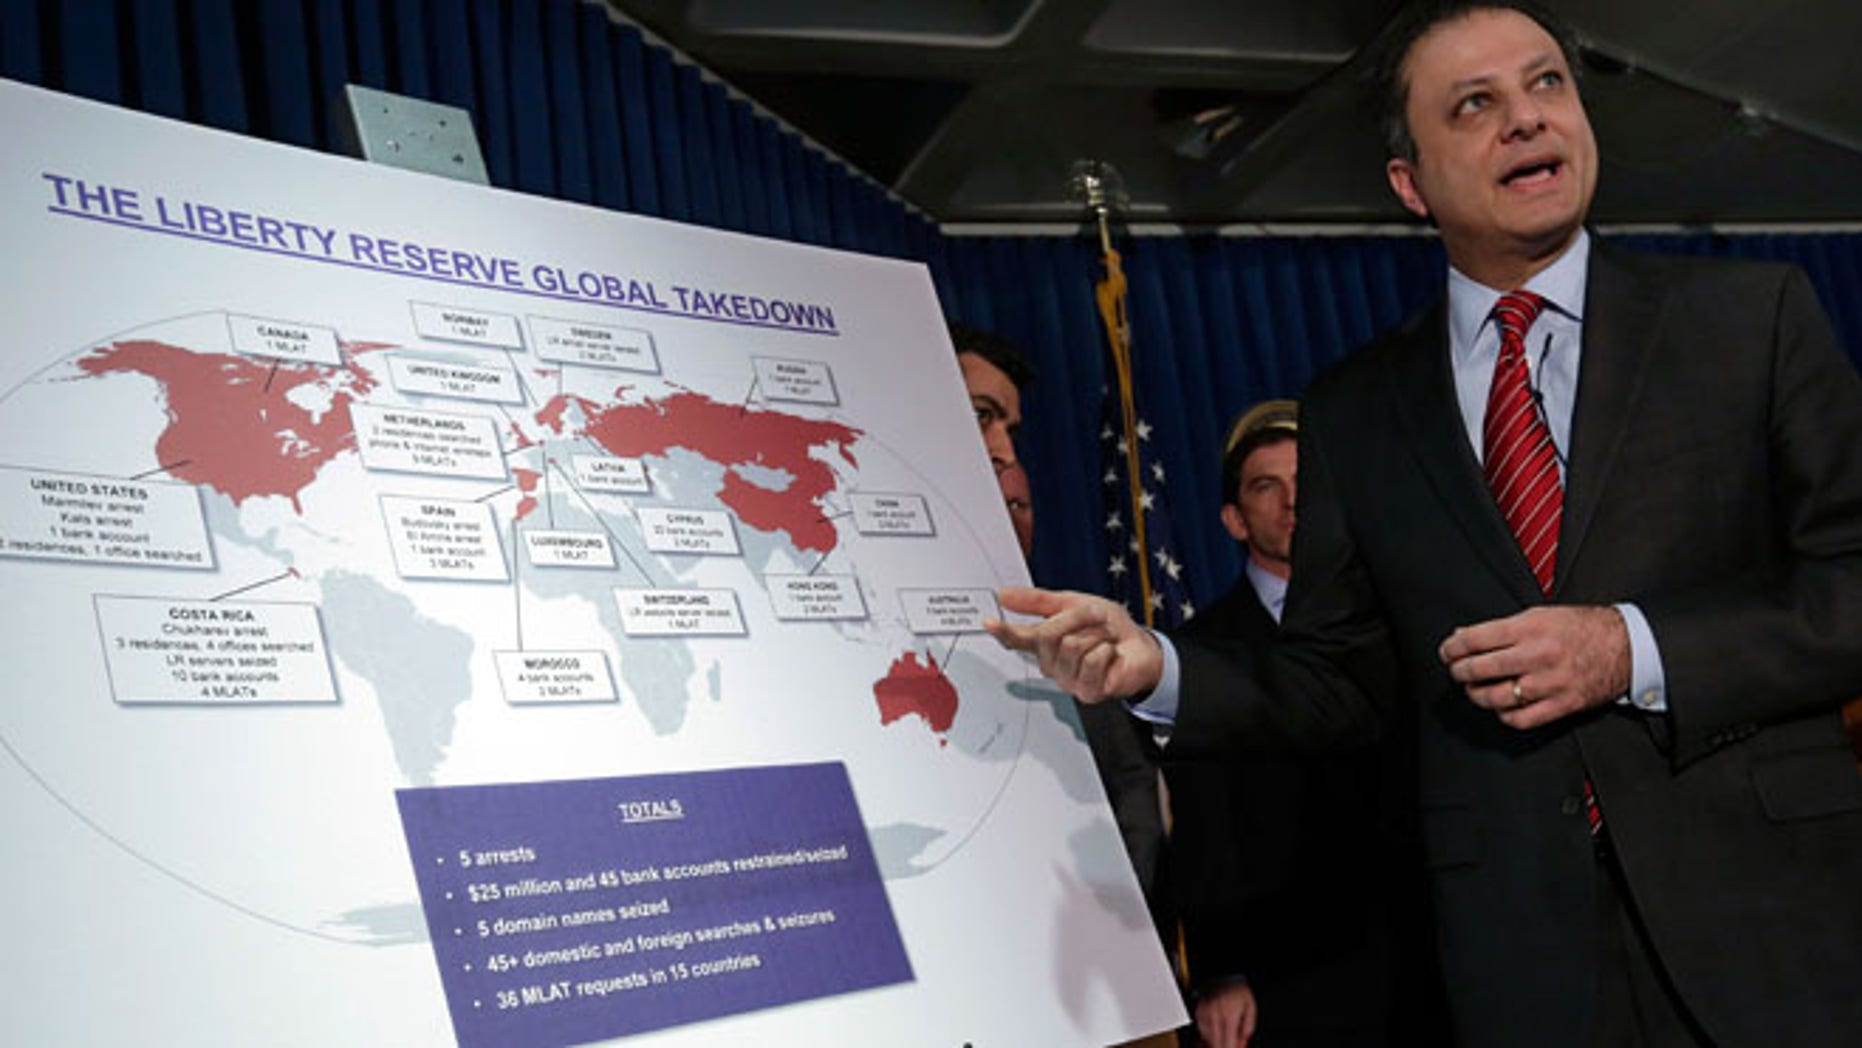 May 28, 2013: Preet Bharara, U.S. Attorney for the Southern District of New York, describes a chart showing the global interests of Liberty Reserve, during a news conference in New York.